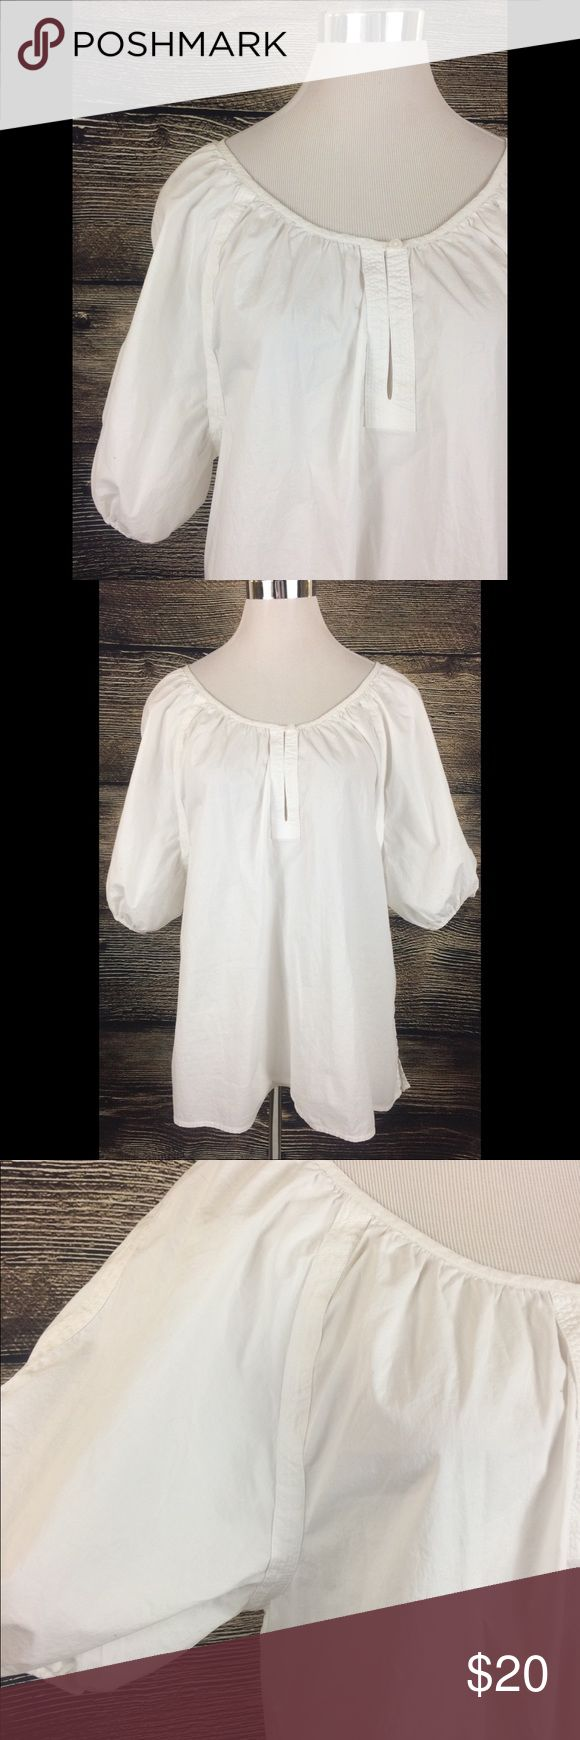 TALBOTS White Peasant Blouse Large Great condition. No stains or issues at all. Fluffy sleeves. Large. Cute neckline with Button. Talbots Tops Blouses